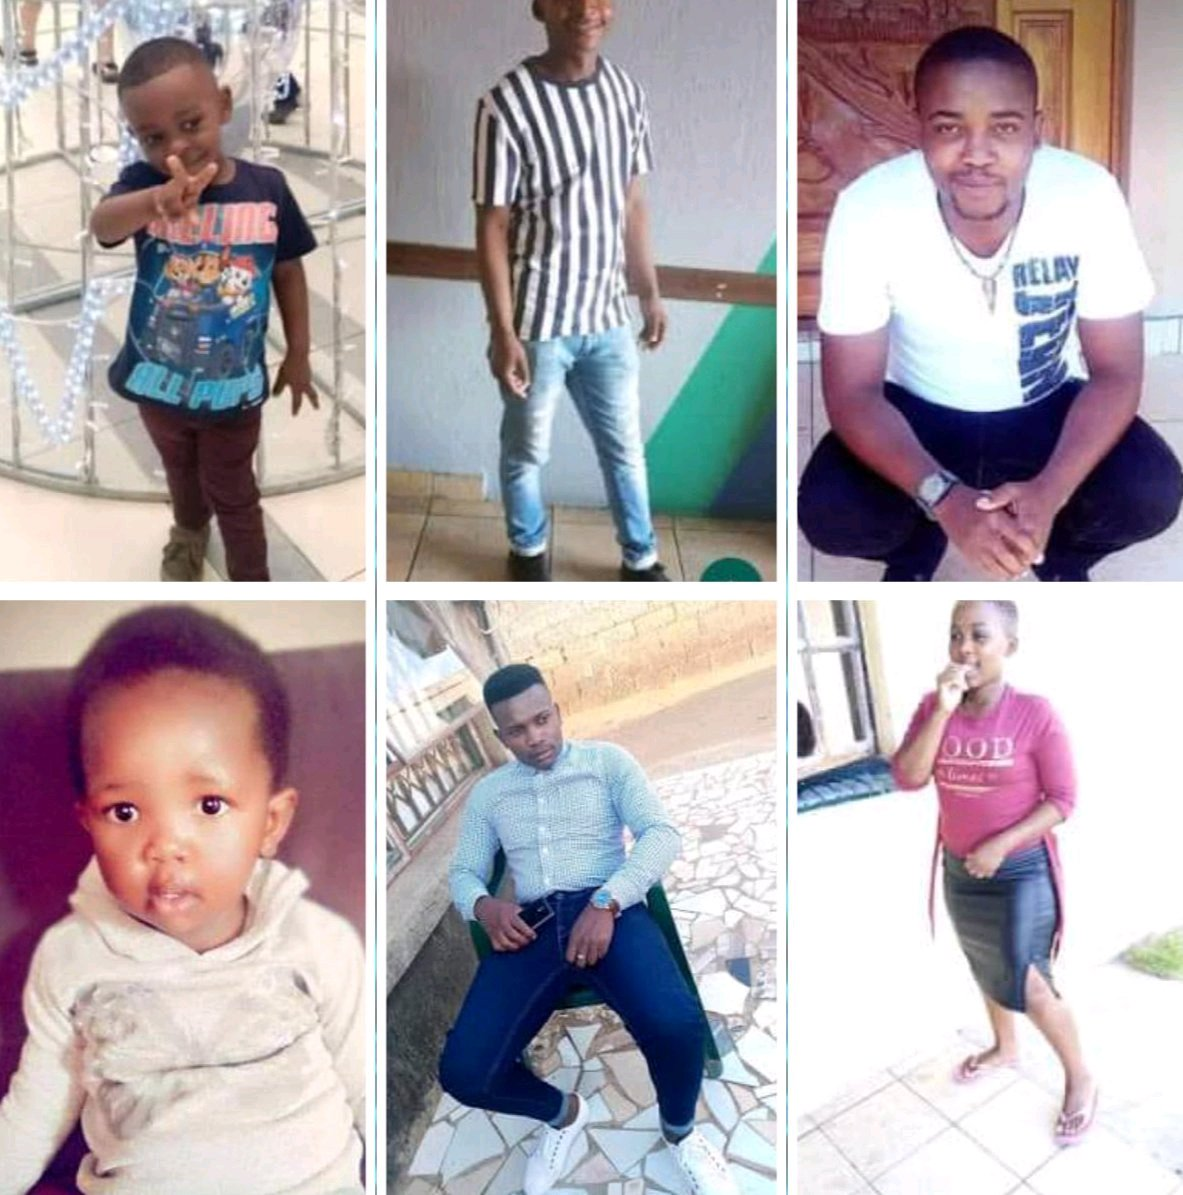 TRAGEDY HIT SOUTH AFRICA As Six Members Of A Family Dies In Fatal Car Accident (PHOTOS)